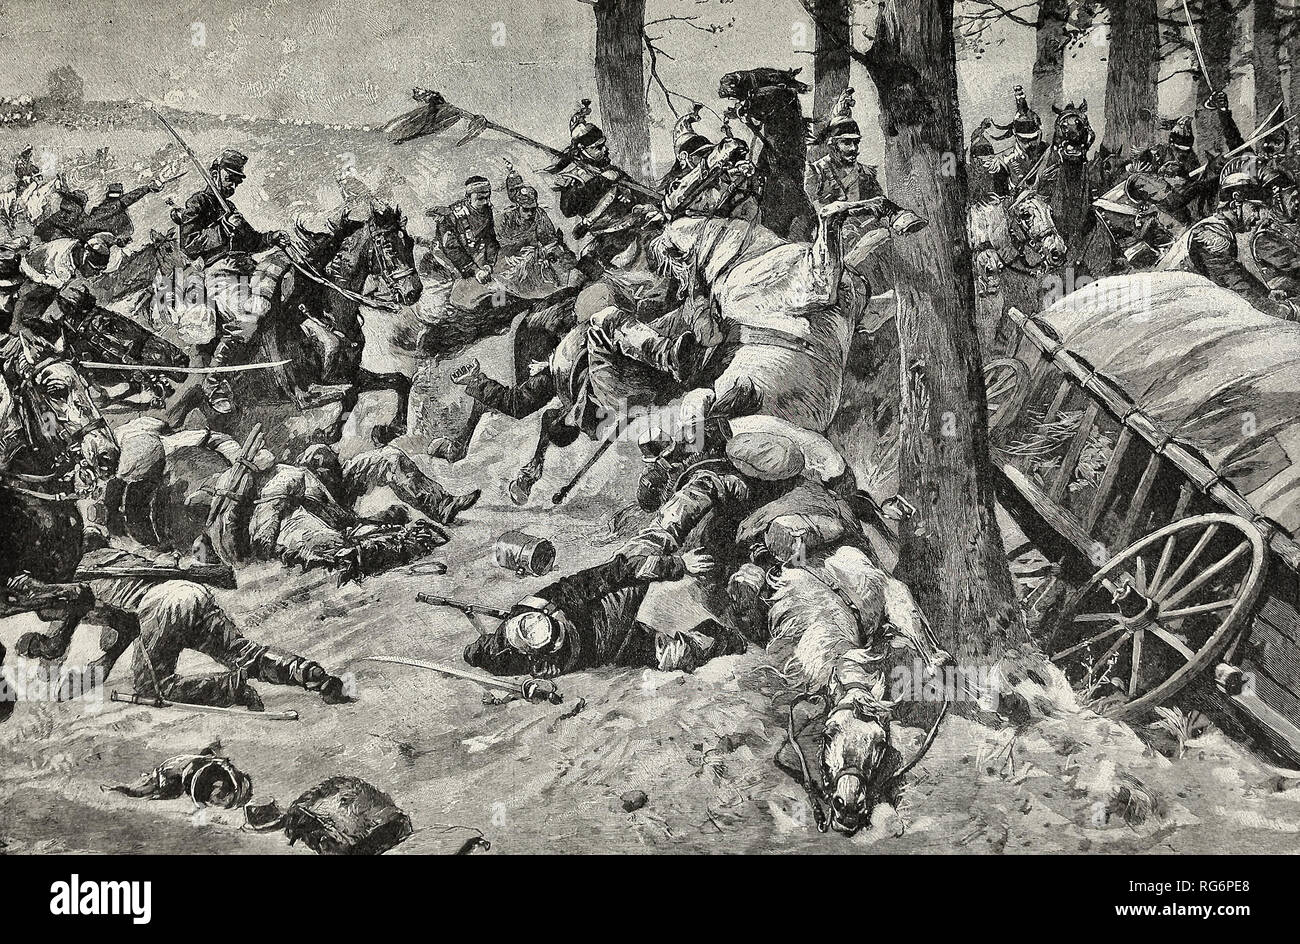 The Overthrow of France - The desperate but hopeless charge of the French Cavalry at Sedan - Stock Image